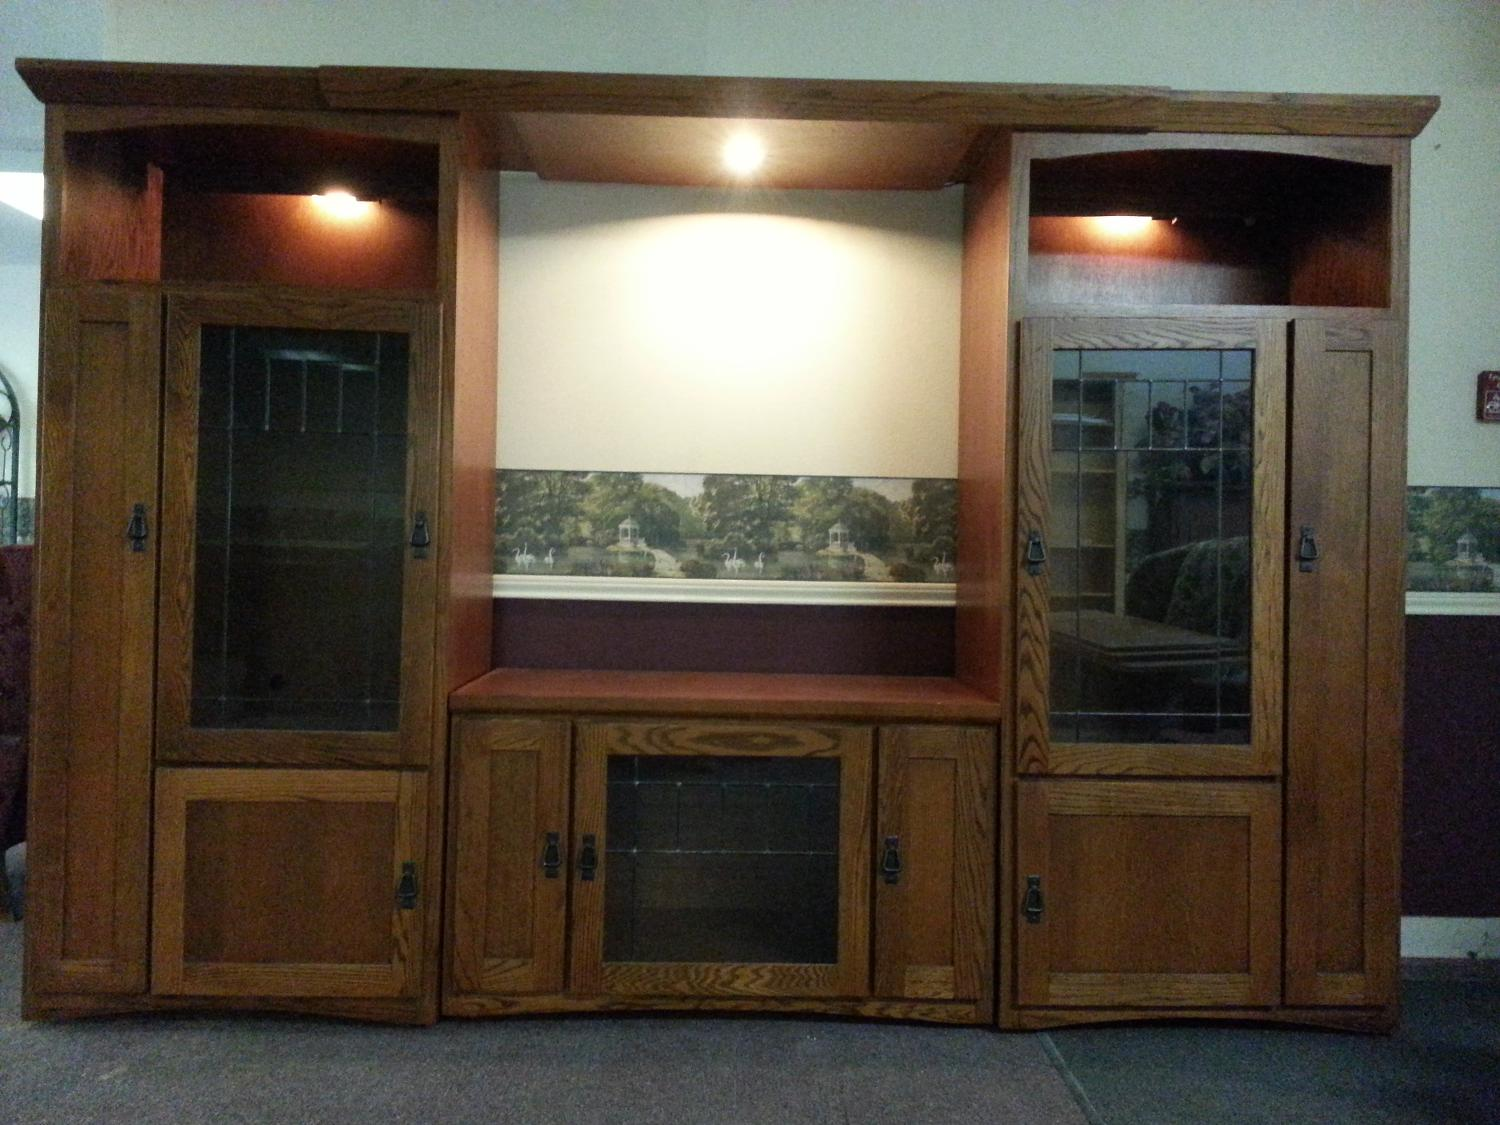 Media Entertainment Center By Aspen Furniture Mission Style W Towers